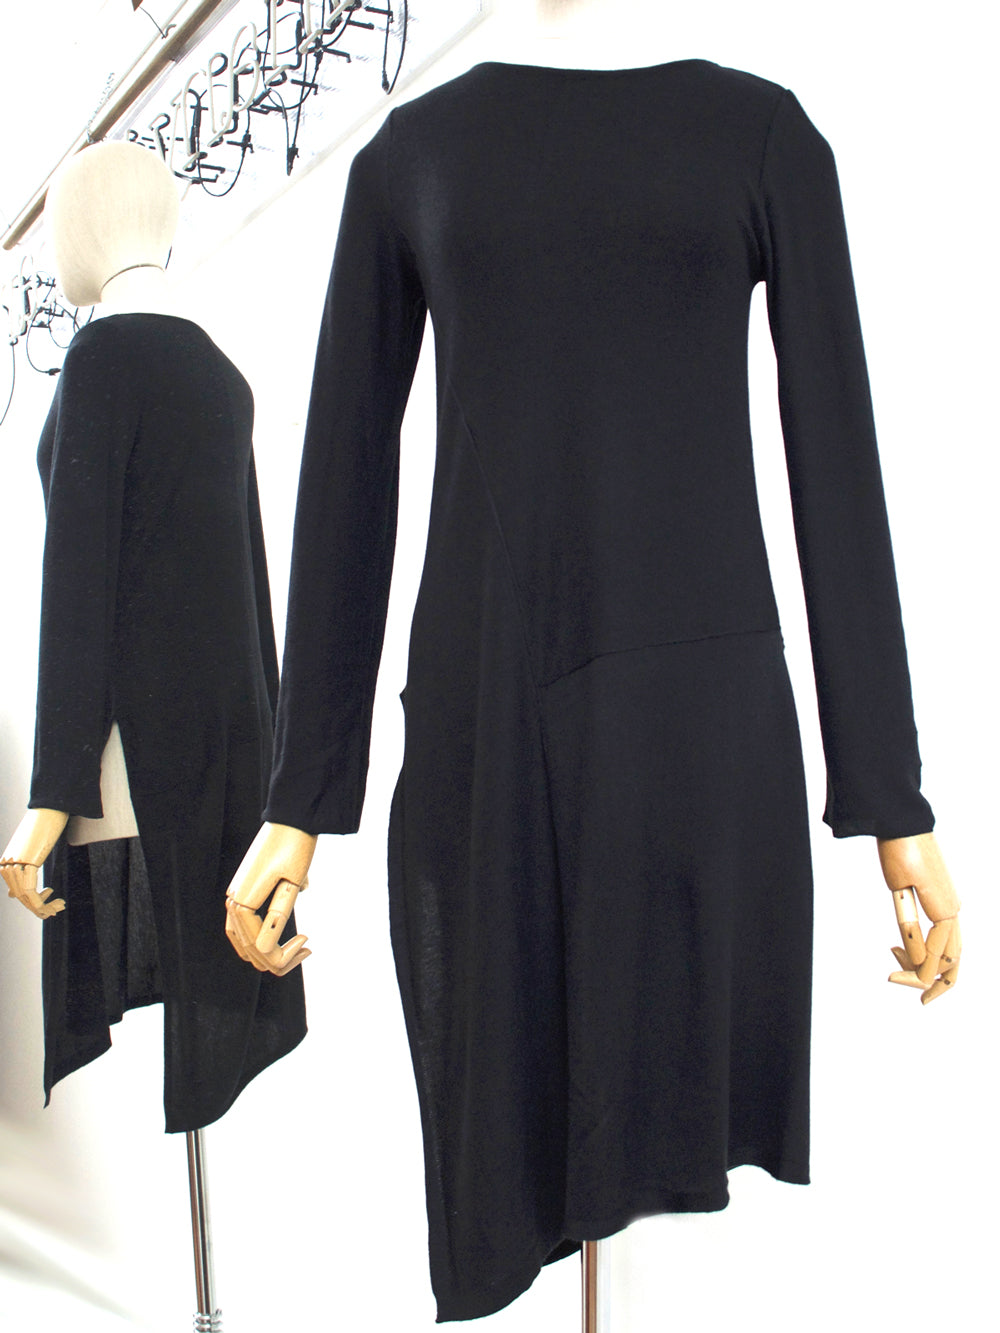 Lurdes Bergada Sweater Dress Black LB M19-910